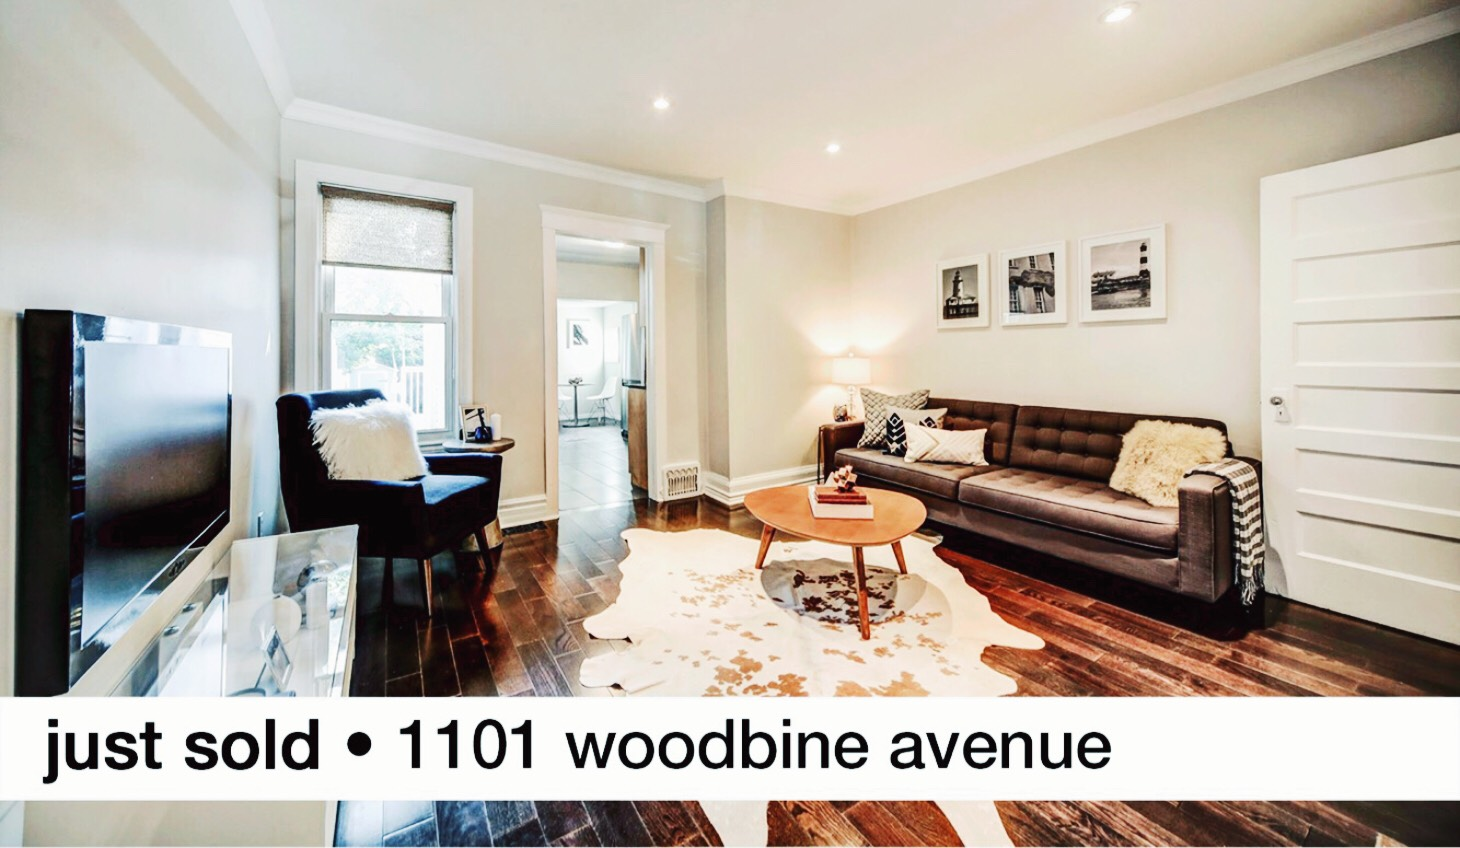 1101 Woodbine Avenue Toronto Sold by Thurston Olsen Real Estate Team